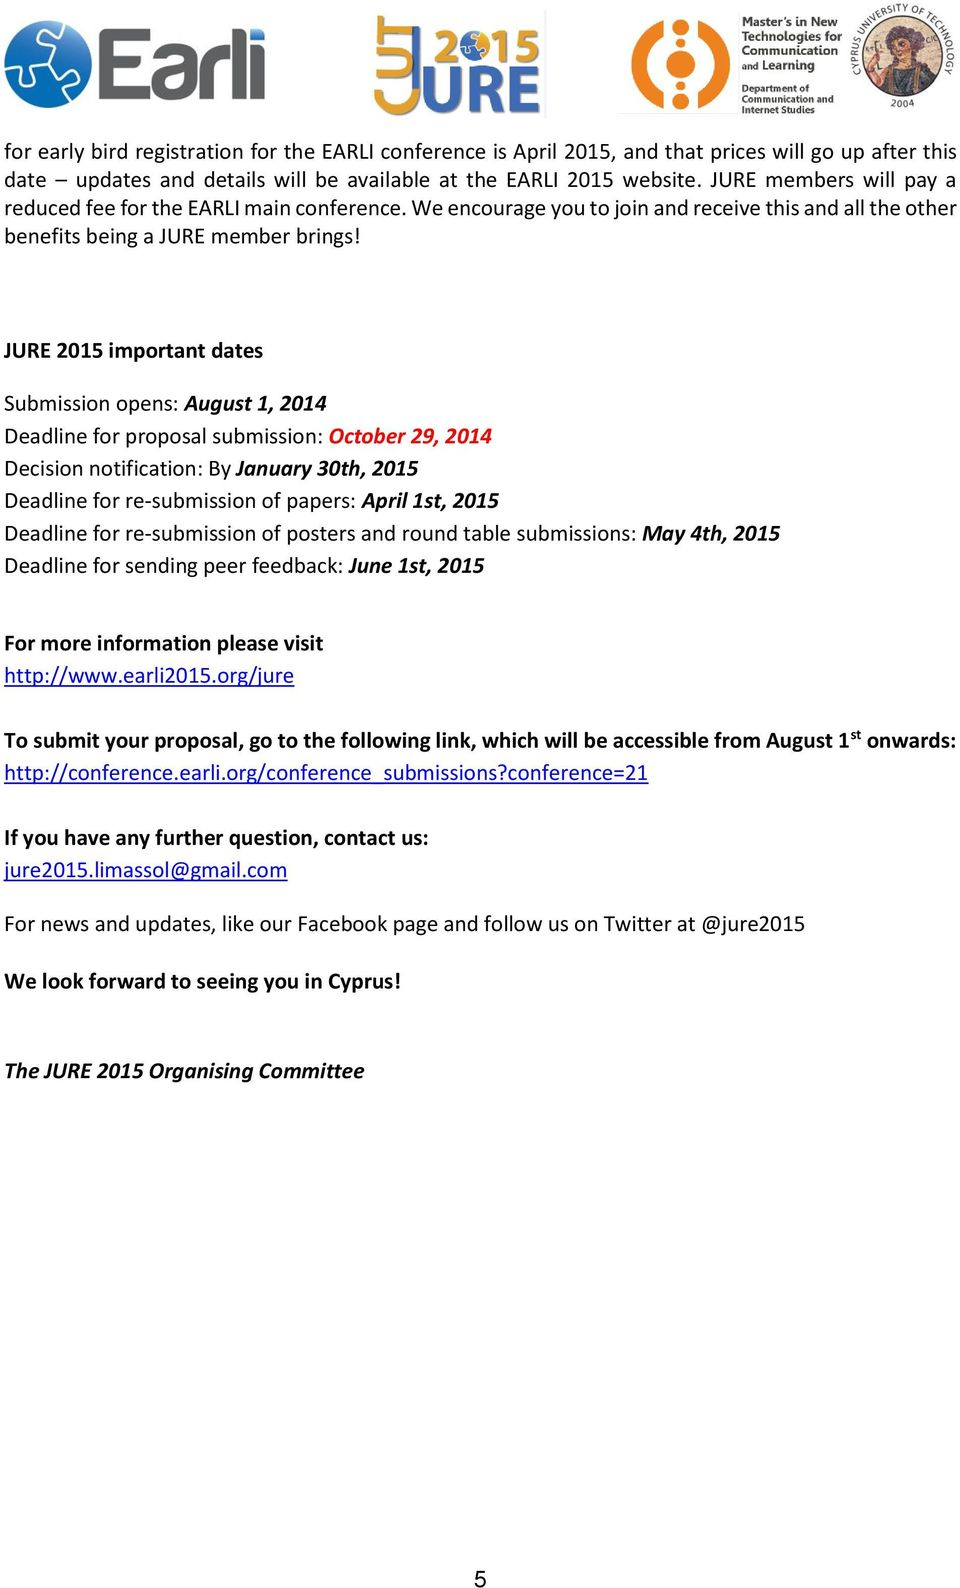 JURE 2015 important dates Submission opens: August 1, 2014 Deadline for proposal submission: October 29, 2014 Decision notification: By January 30th, 2015 Deadline for re-submission of papers: April